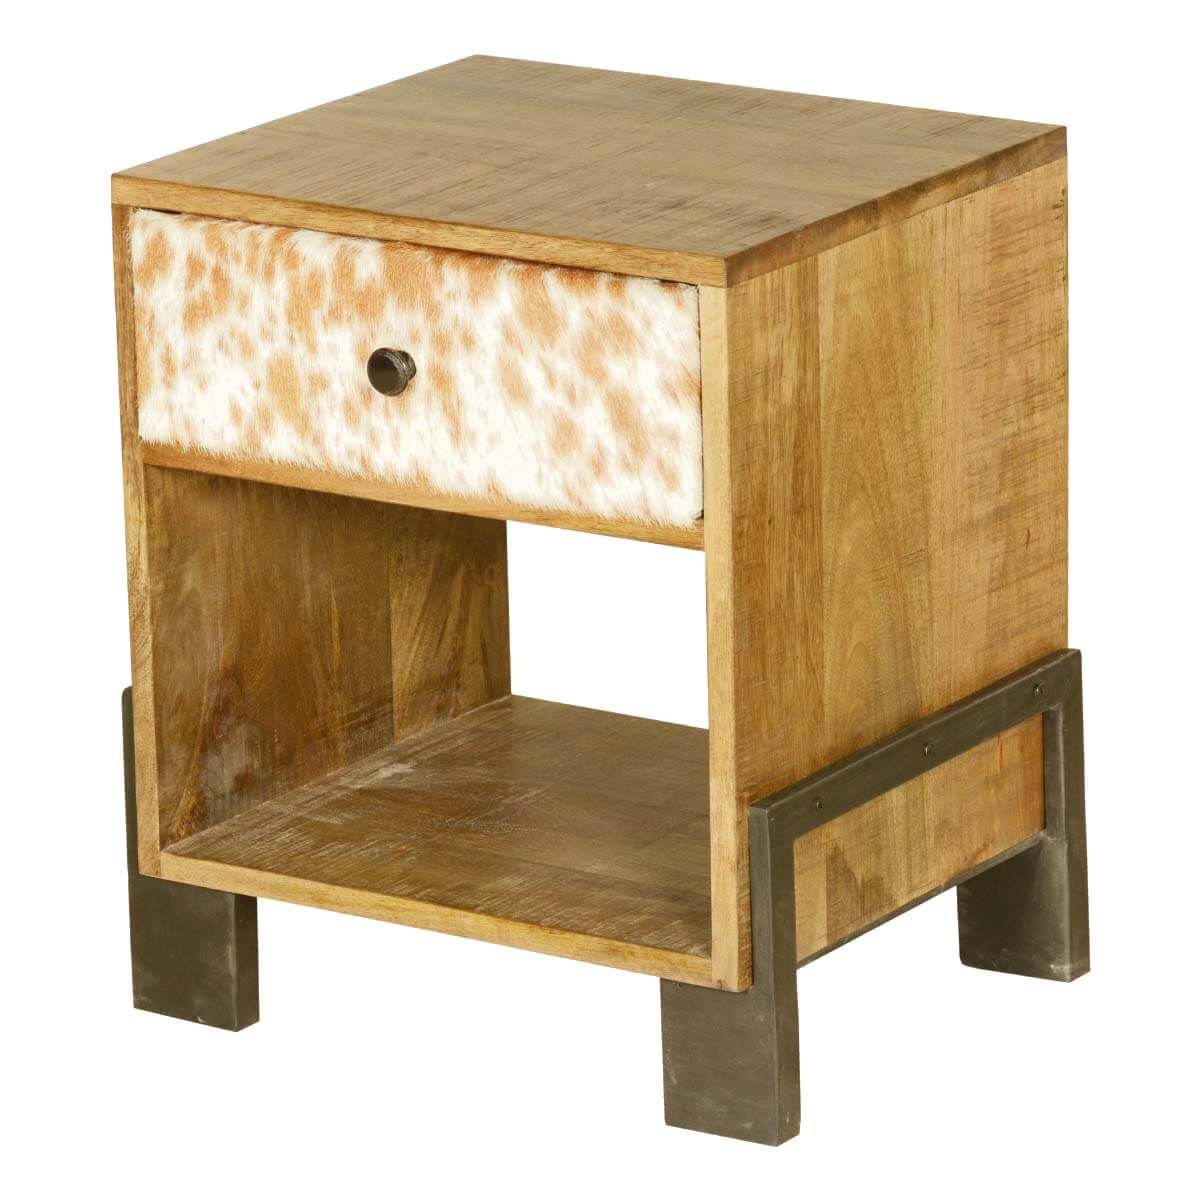 60's Retro Mango Wood & Iron Open Back Night Stand End Table